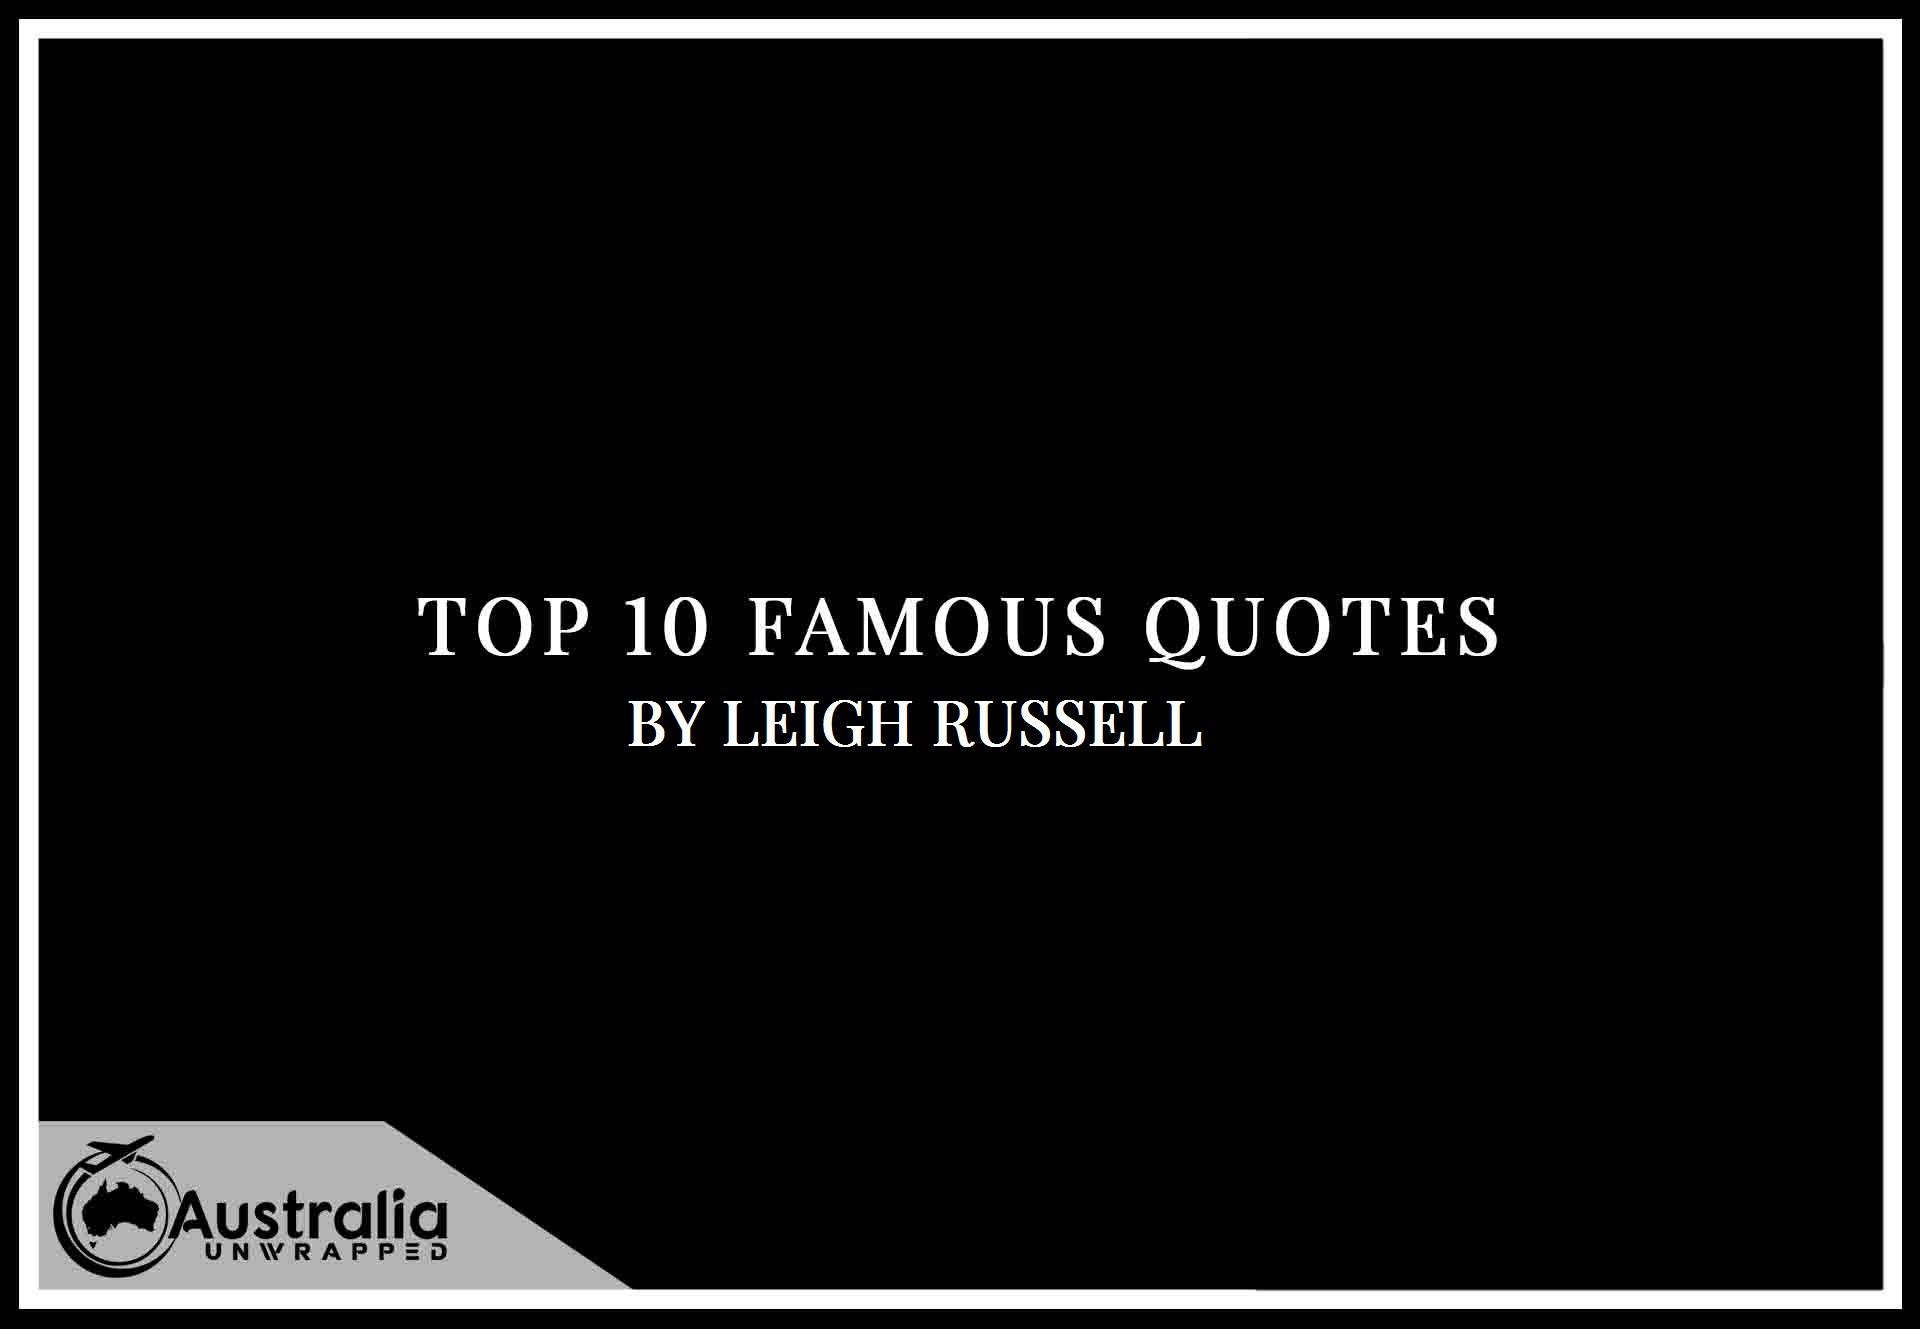 Leigh Russell's Top 10 Popular and Famous Quotes